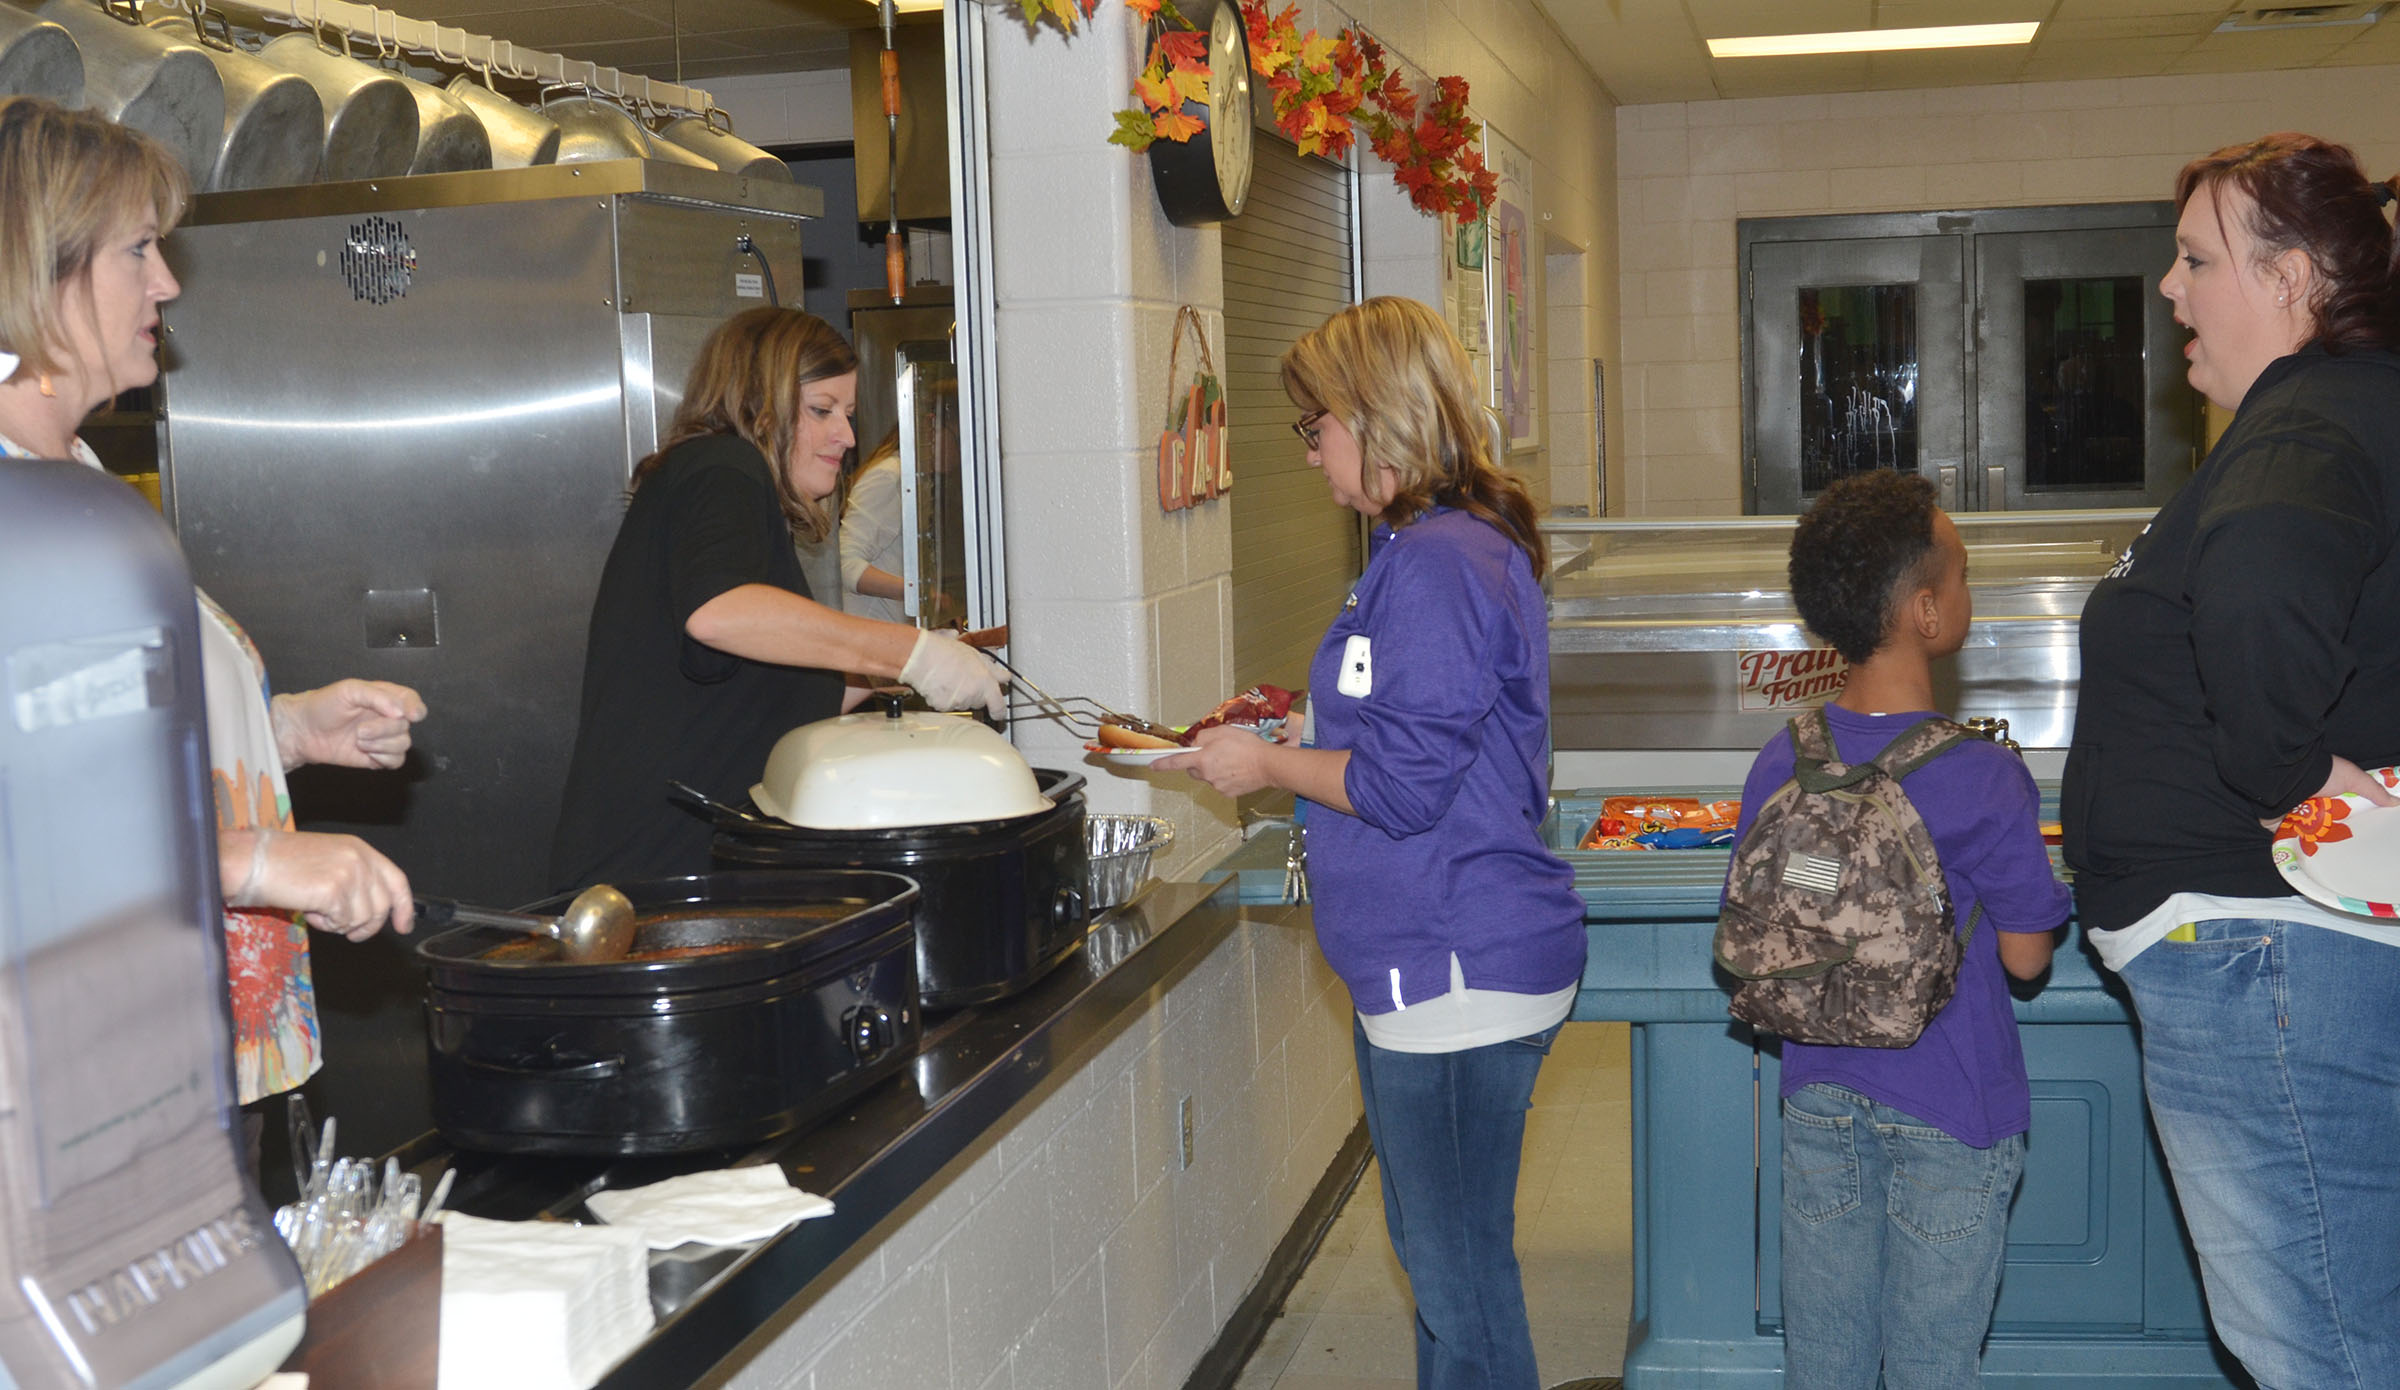 CMS volleyball mothers Andrea Smith, at left, and Ashlee Petett serve barbecue.